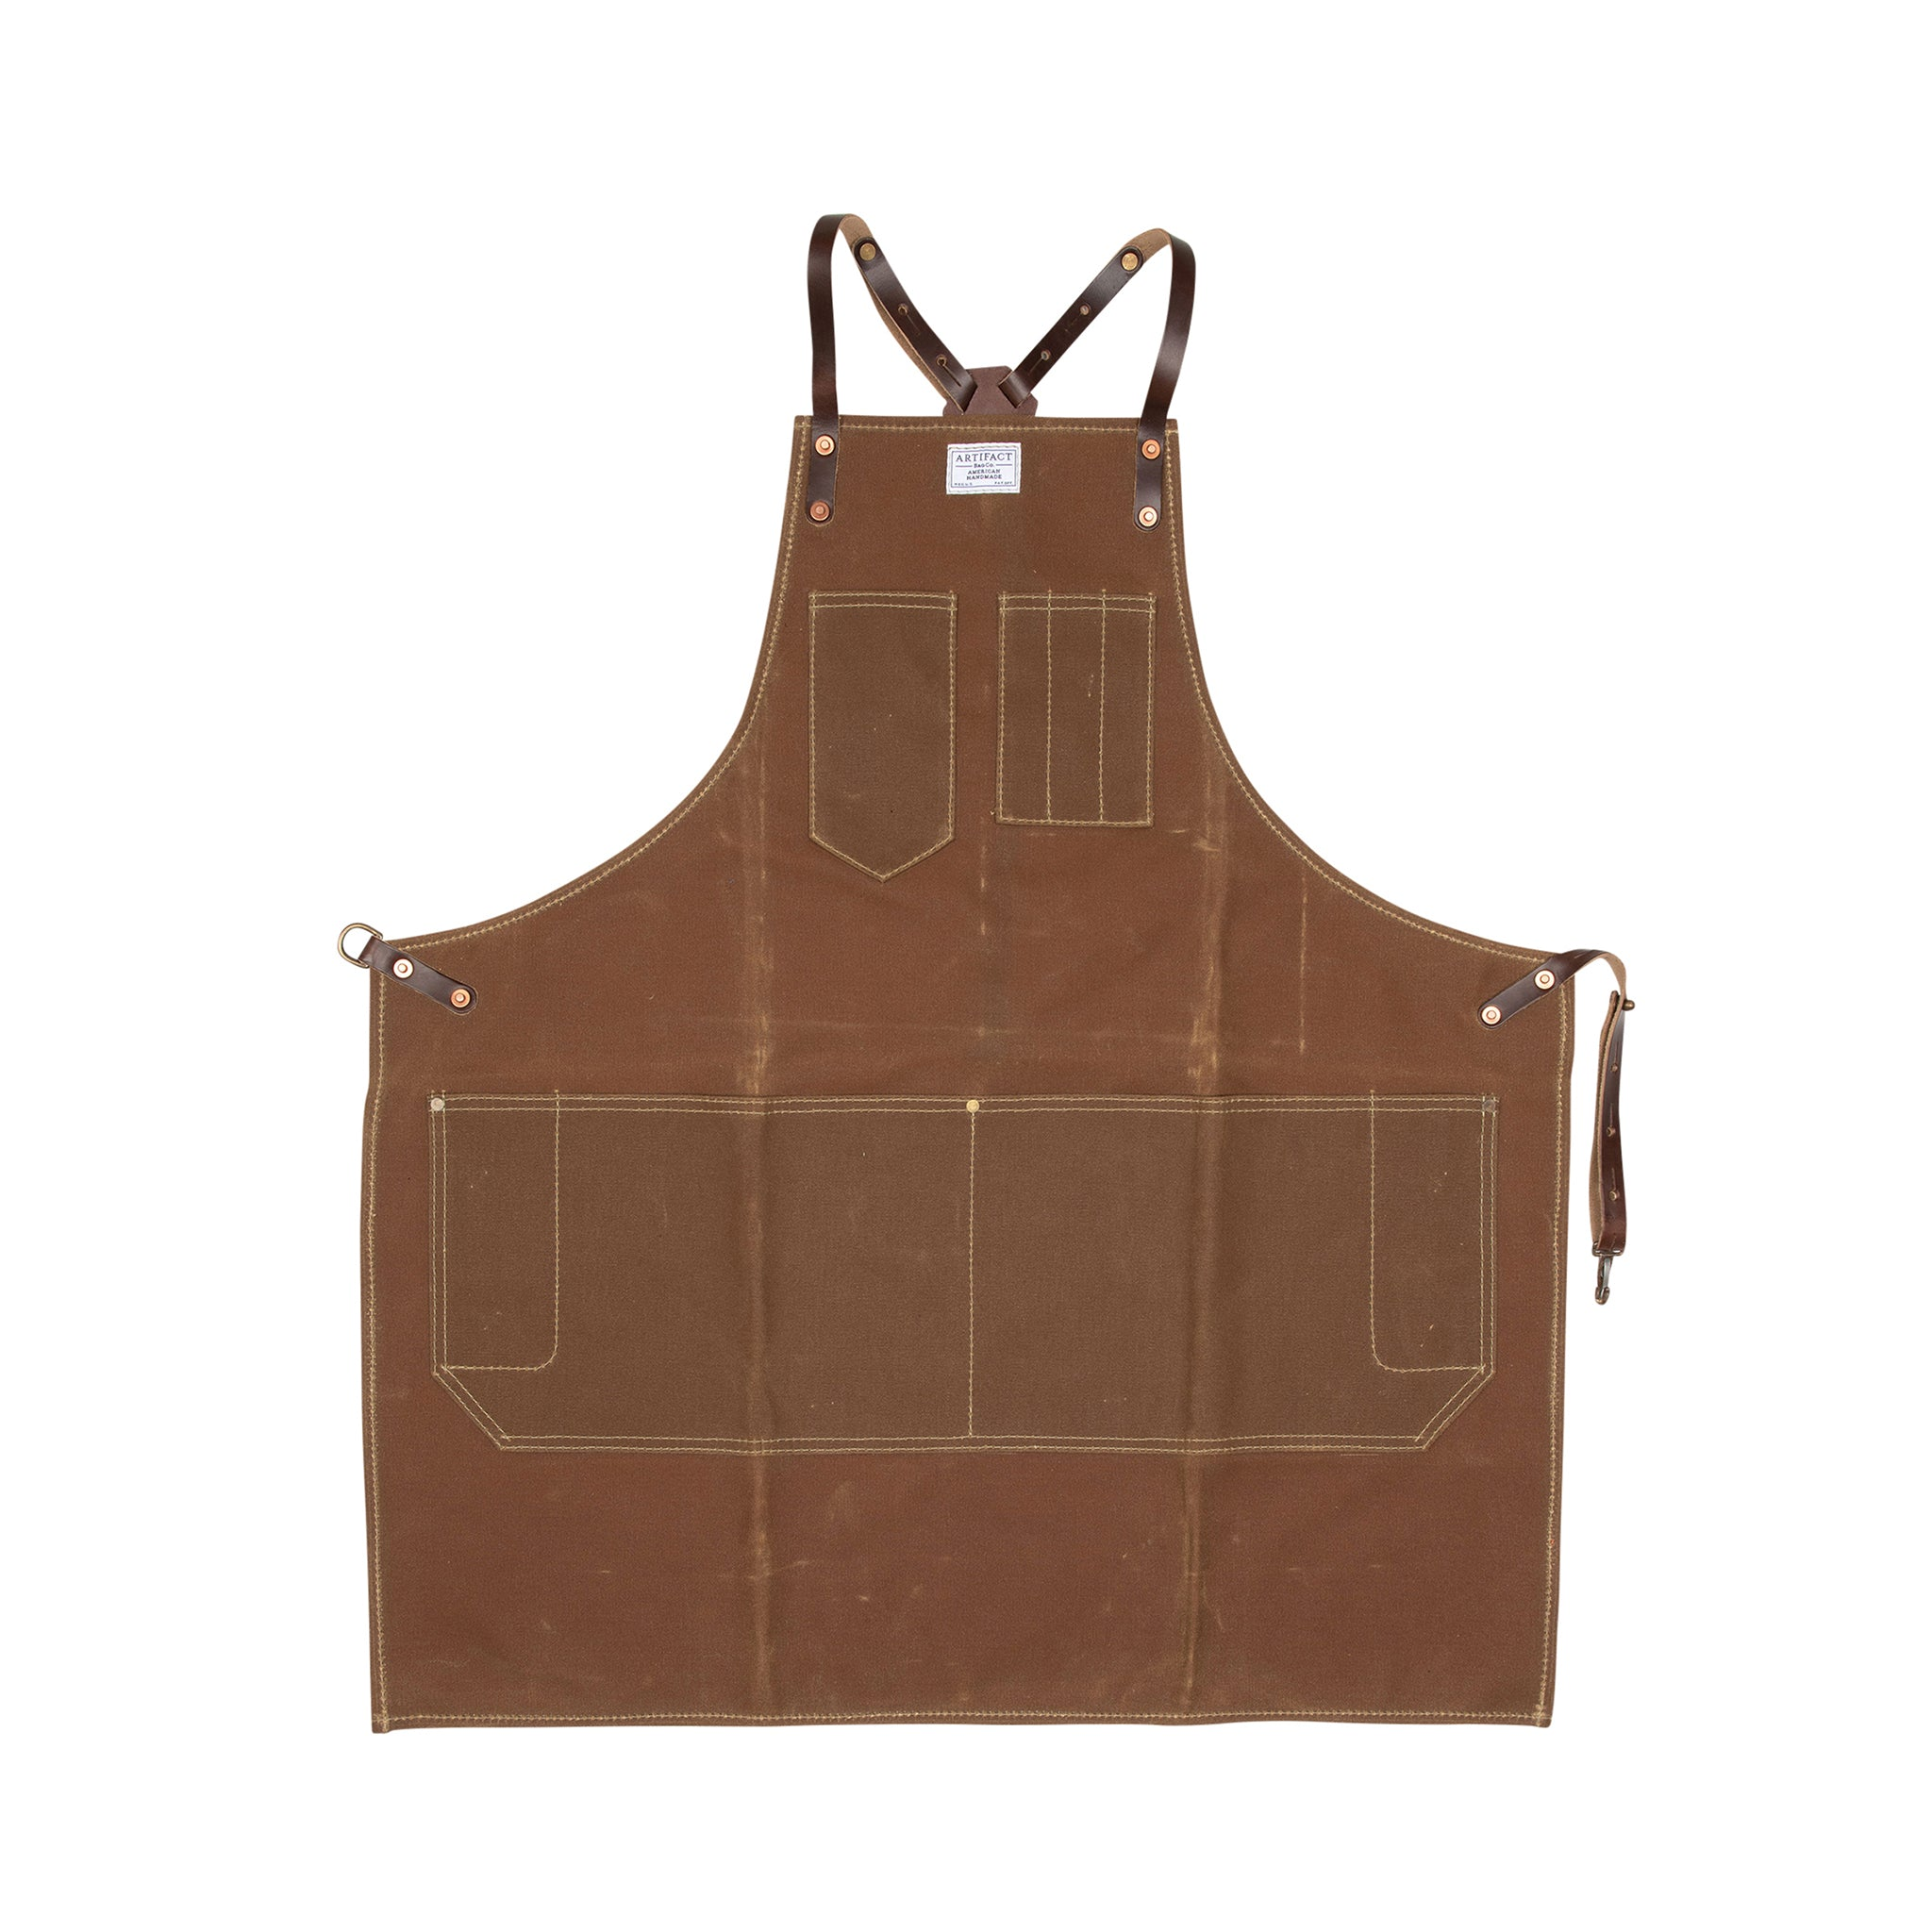 Wax Canvas Artisan w/ Leather Y-Strap - Artifact Aprons 6